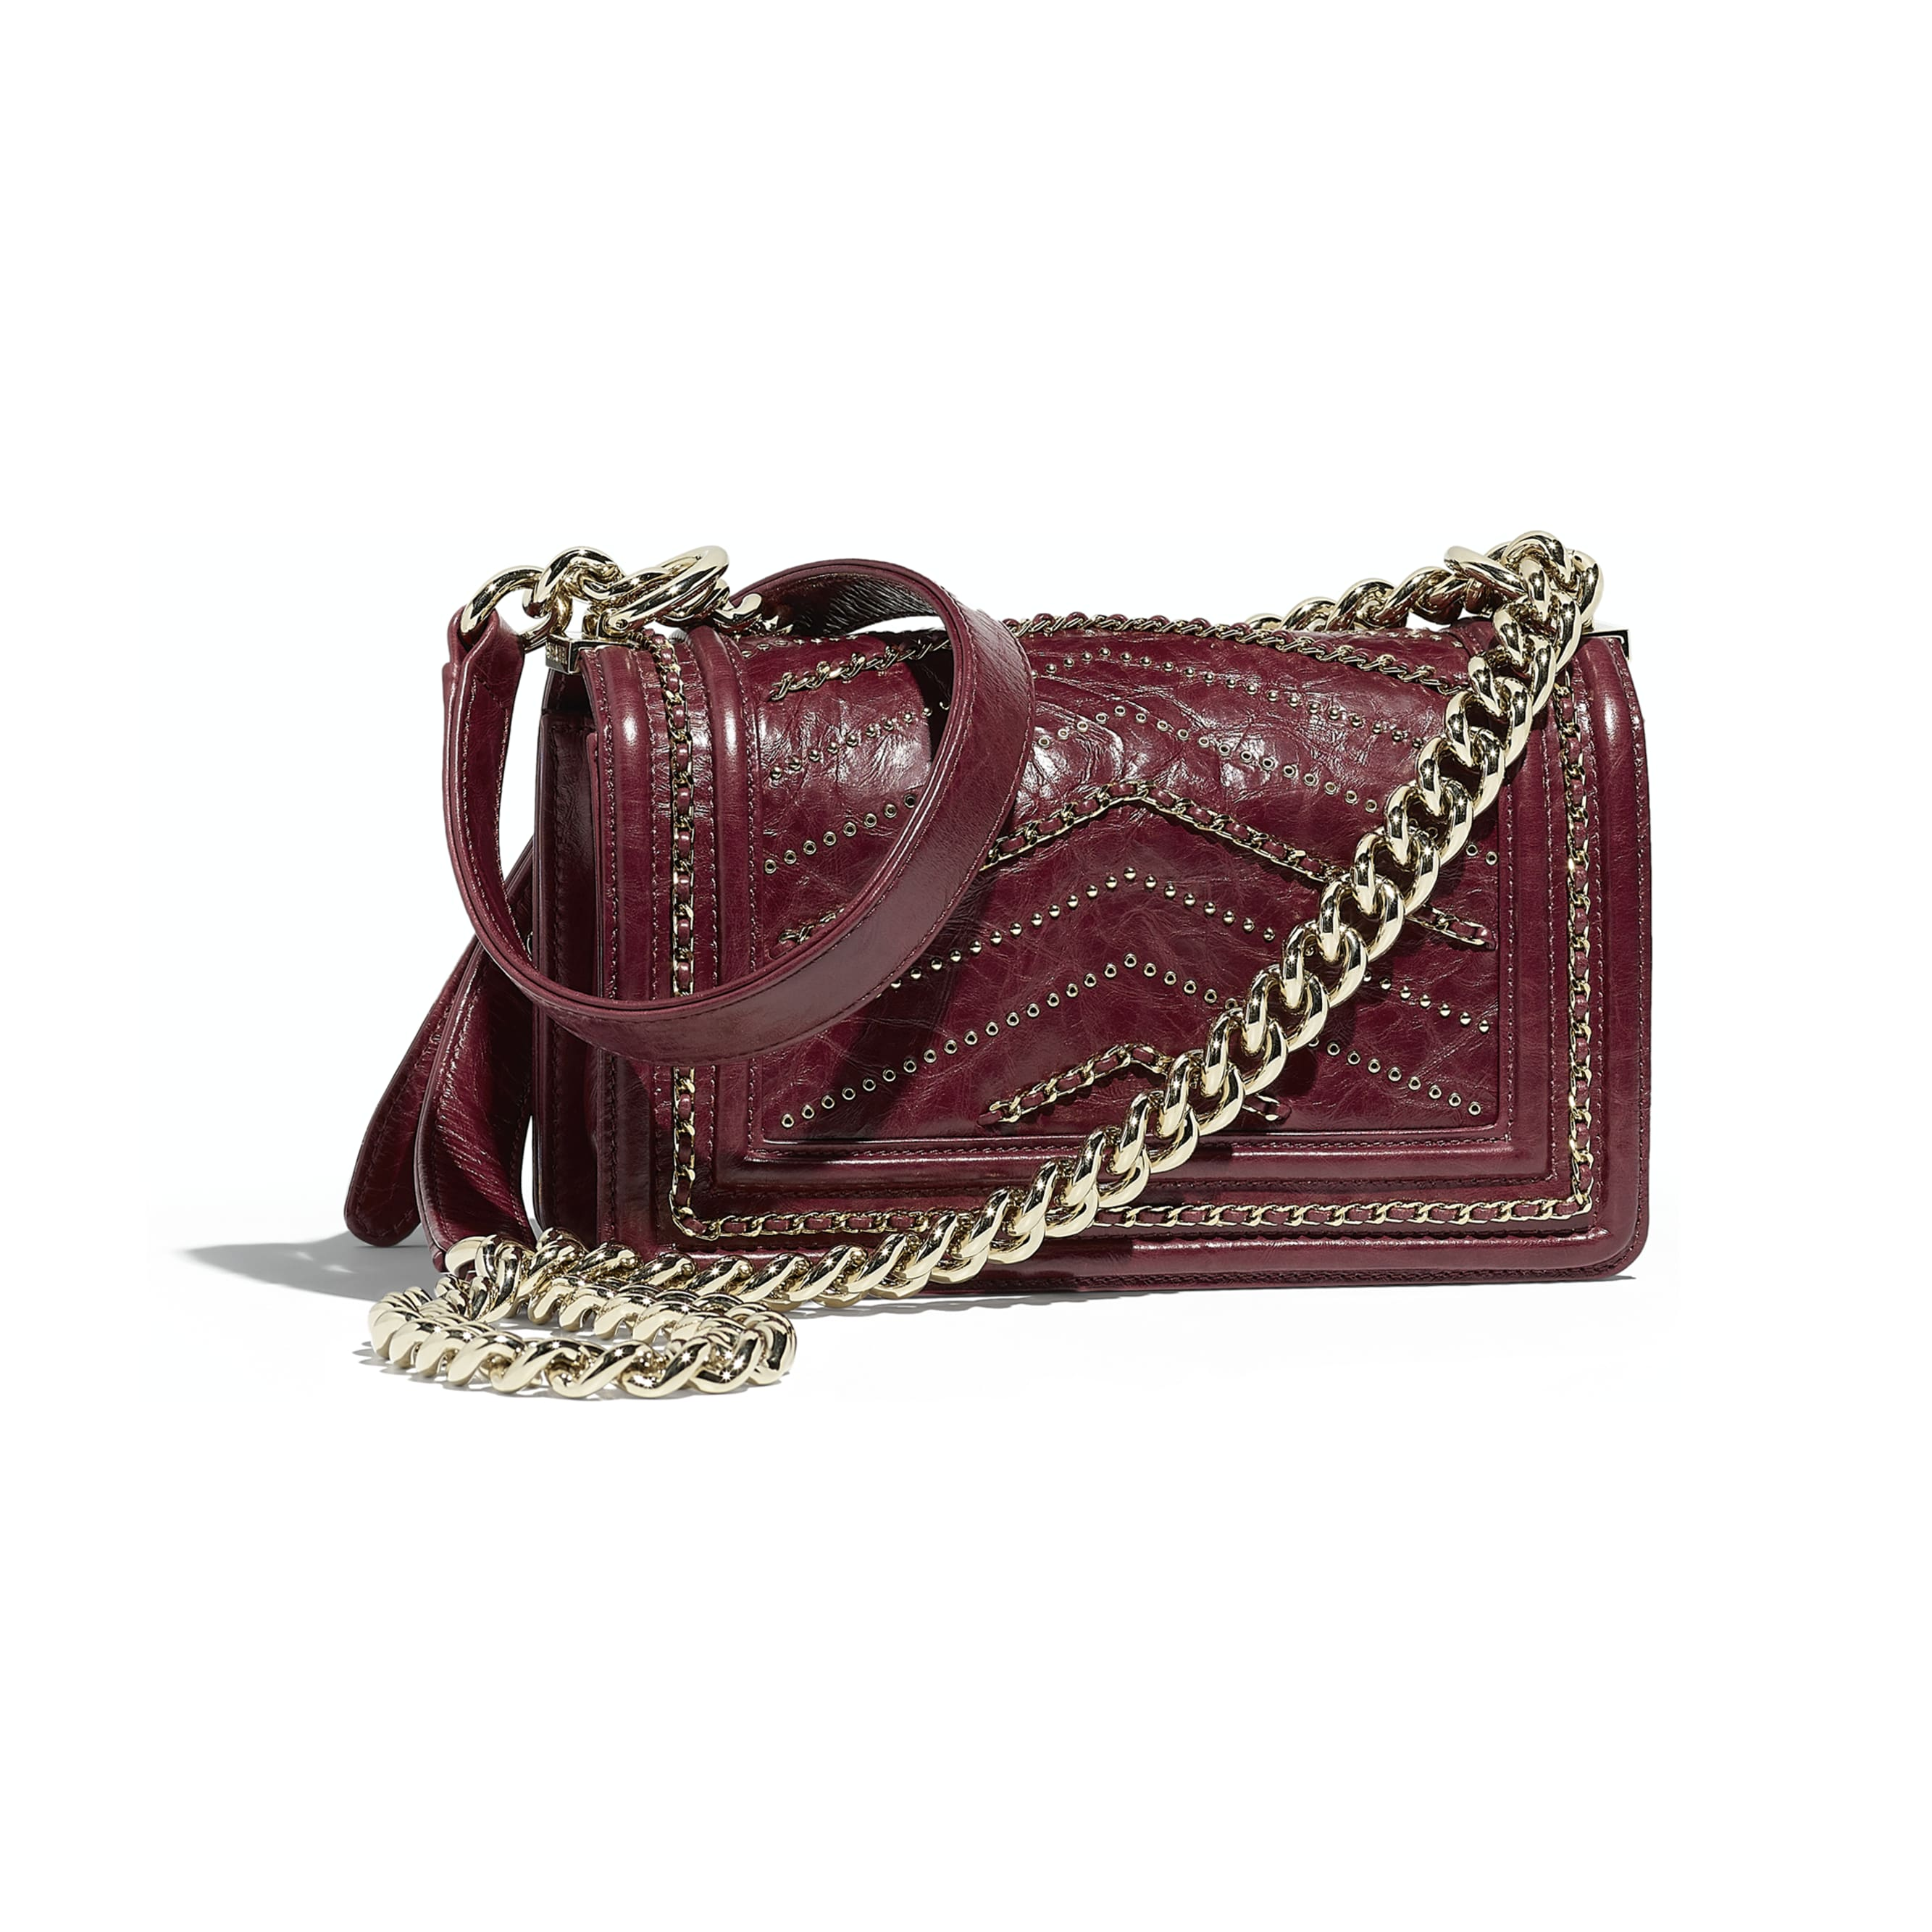 Small BOY CHANEL Handbag - Red - Crumpled Calfskin & Gold-Tone Metal - Alternative view - see standard sized version